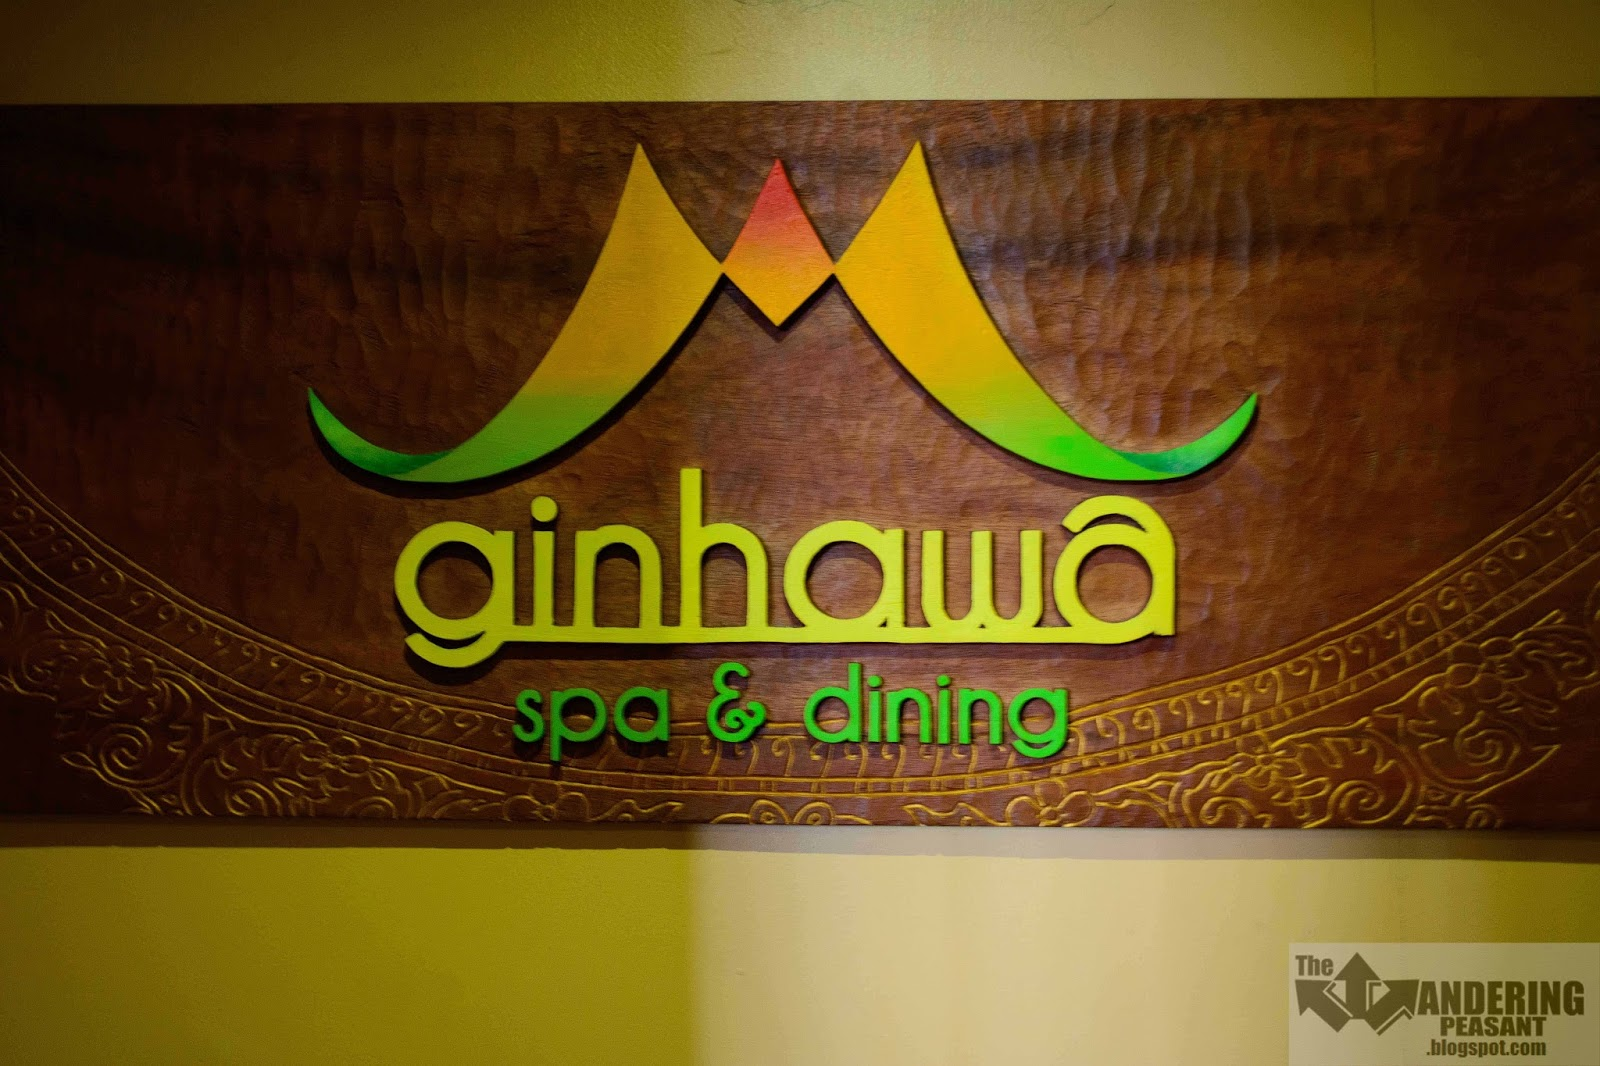 The Wandering Peasant: Ginhawa Spa and Dining: Relaxing